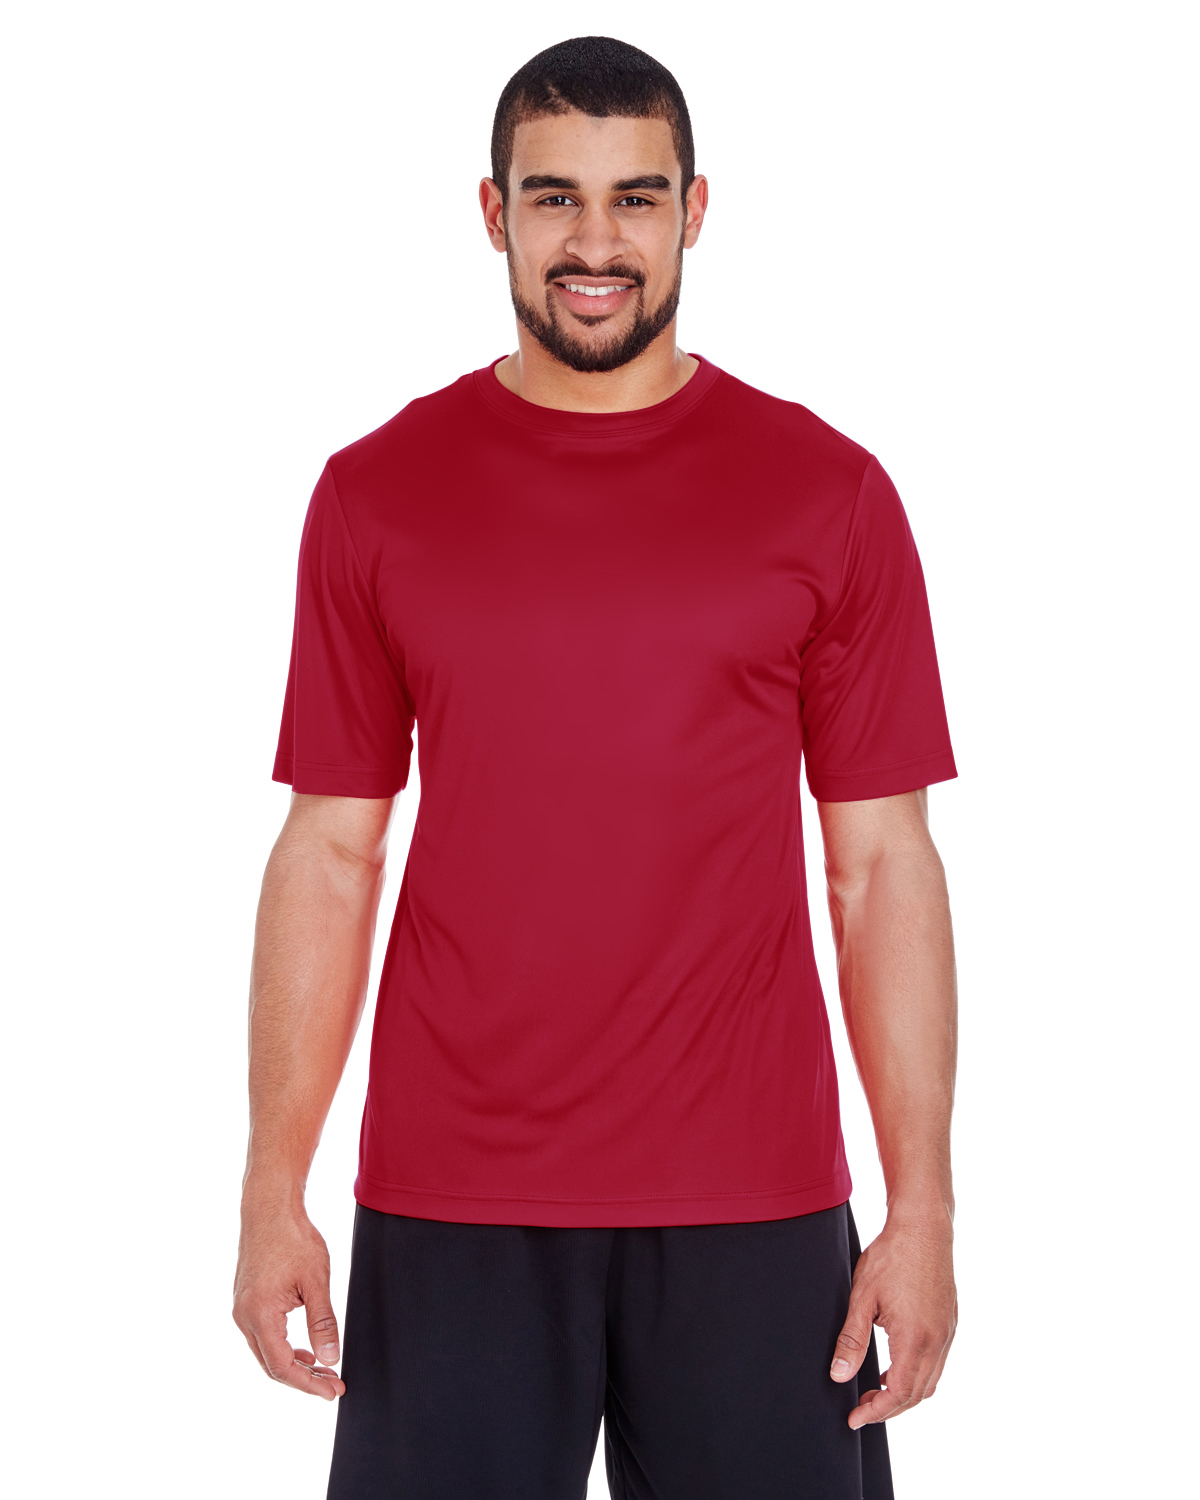 click to view SPORT SCRLET RED